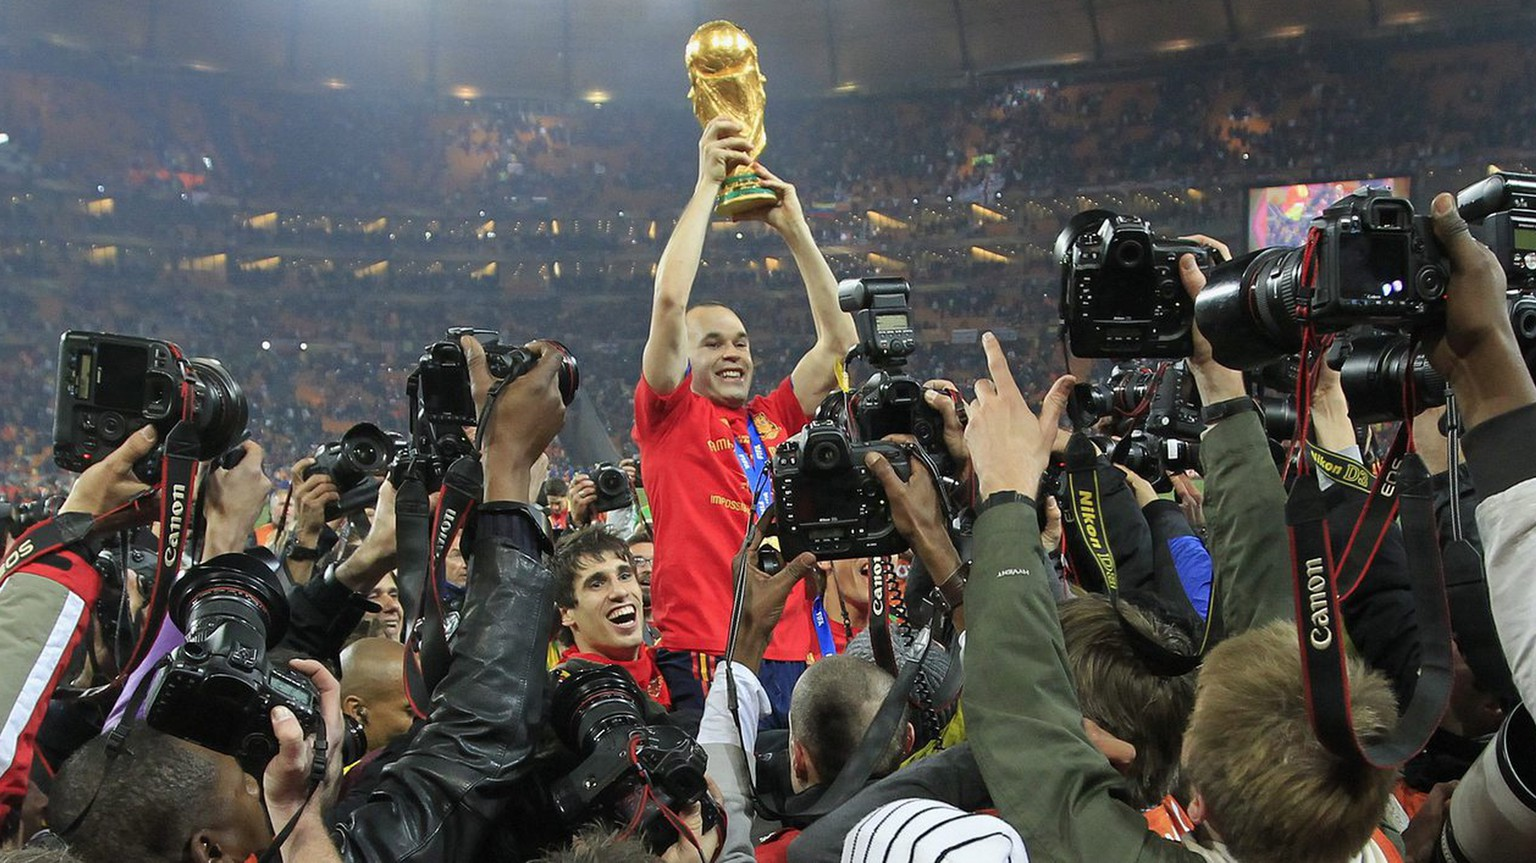 Spain's Andres Iniesta celebrates with the trophy after winning the 2010 FIFA soccer World Cup final between the Netherlands and Spain in the Soccer City Stadium in Johannesburg, South Africa, pictured on Sunday, July 11, 2010. (KEYSTONE/Peter Klaunzer)  EDITOR'S NOTE: Under terms of the World Cup journalist accreditation agreement, images from World Cup soccer matches may only be displayed on mobile devices at the end user's initiative and request, unpromted by any alert, update or other information pushed to the user's device. No trademark rights or rights of personality are conveyed with these images. All usage must comply with FIFA credential restrictions posted at http://www.ap.org/mediacredential/index.html